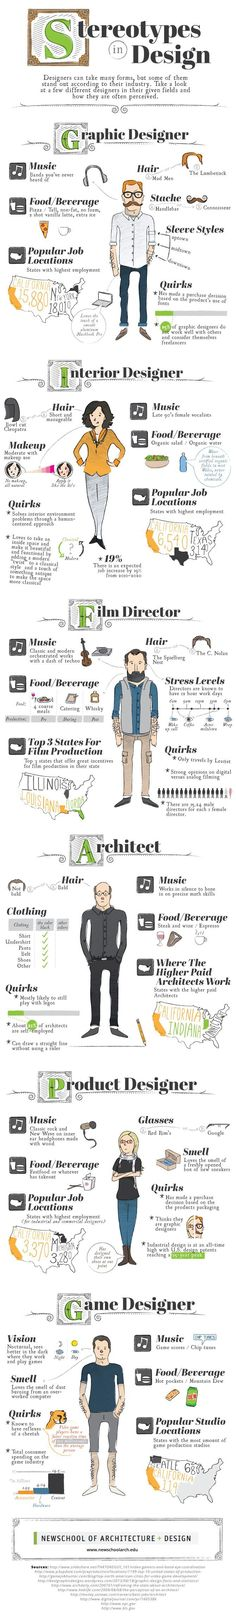 Architecture | Tipsögraphic | More architecture tips at http://www.tipsographic.com/